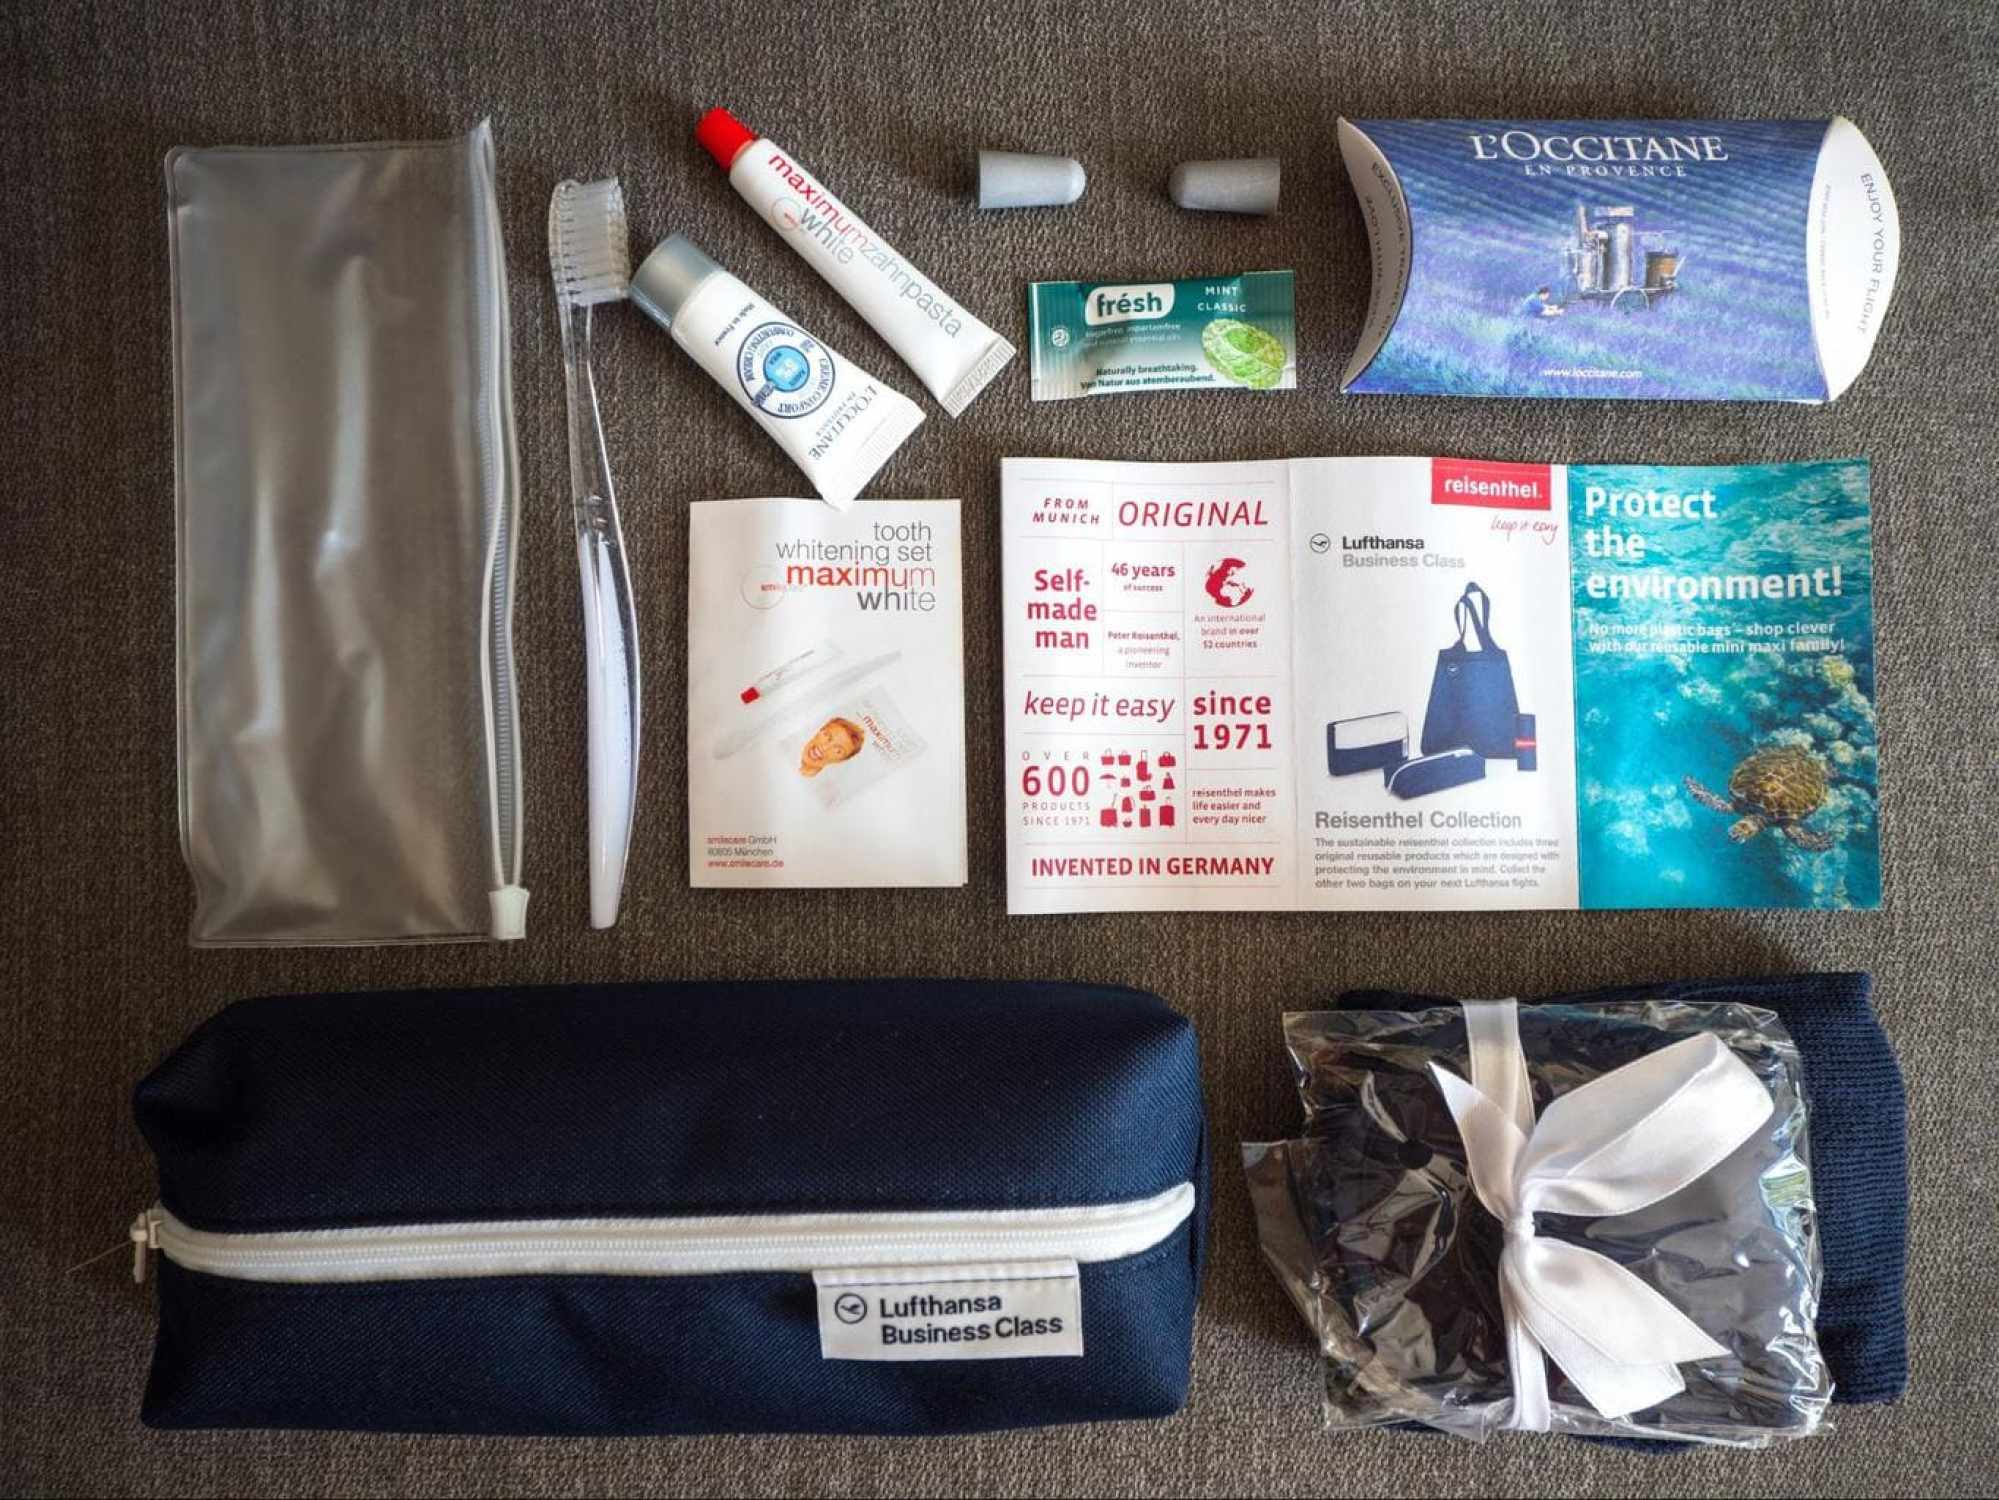 Lufthansa Business Class amenity kit